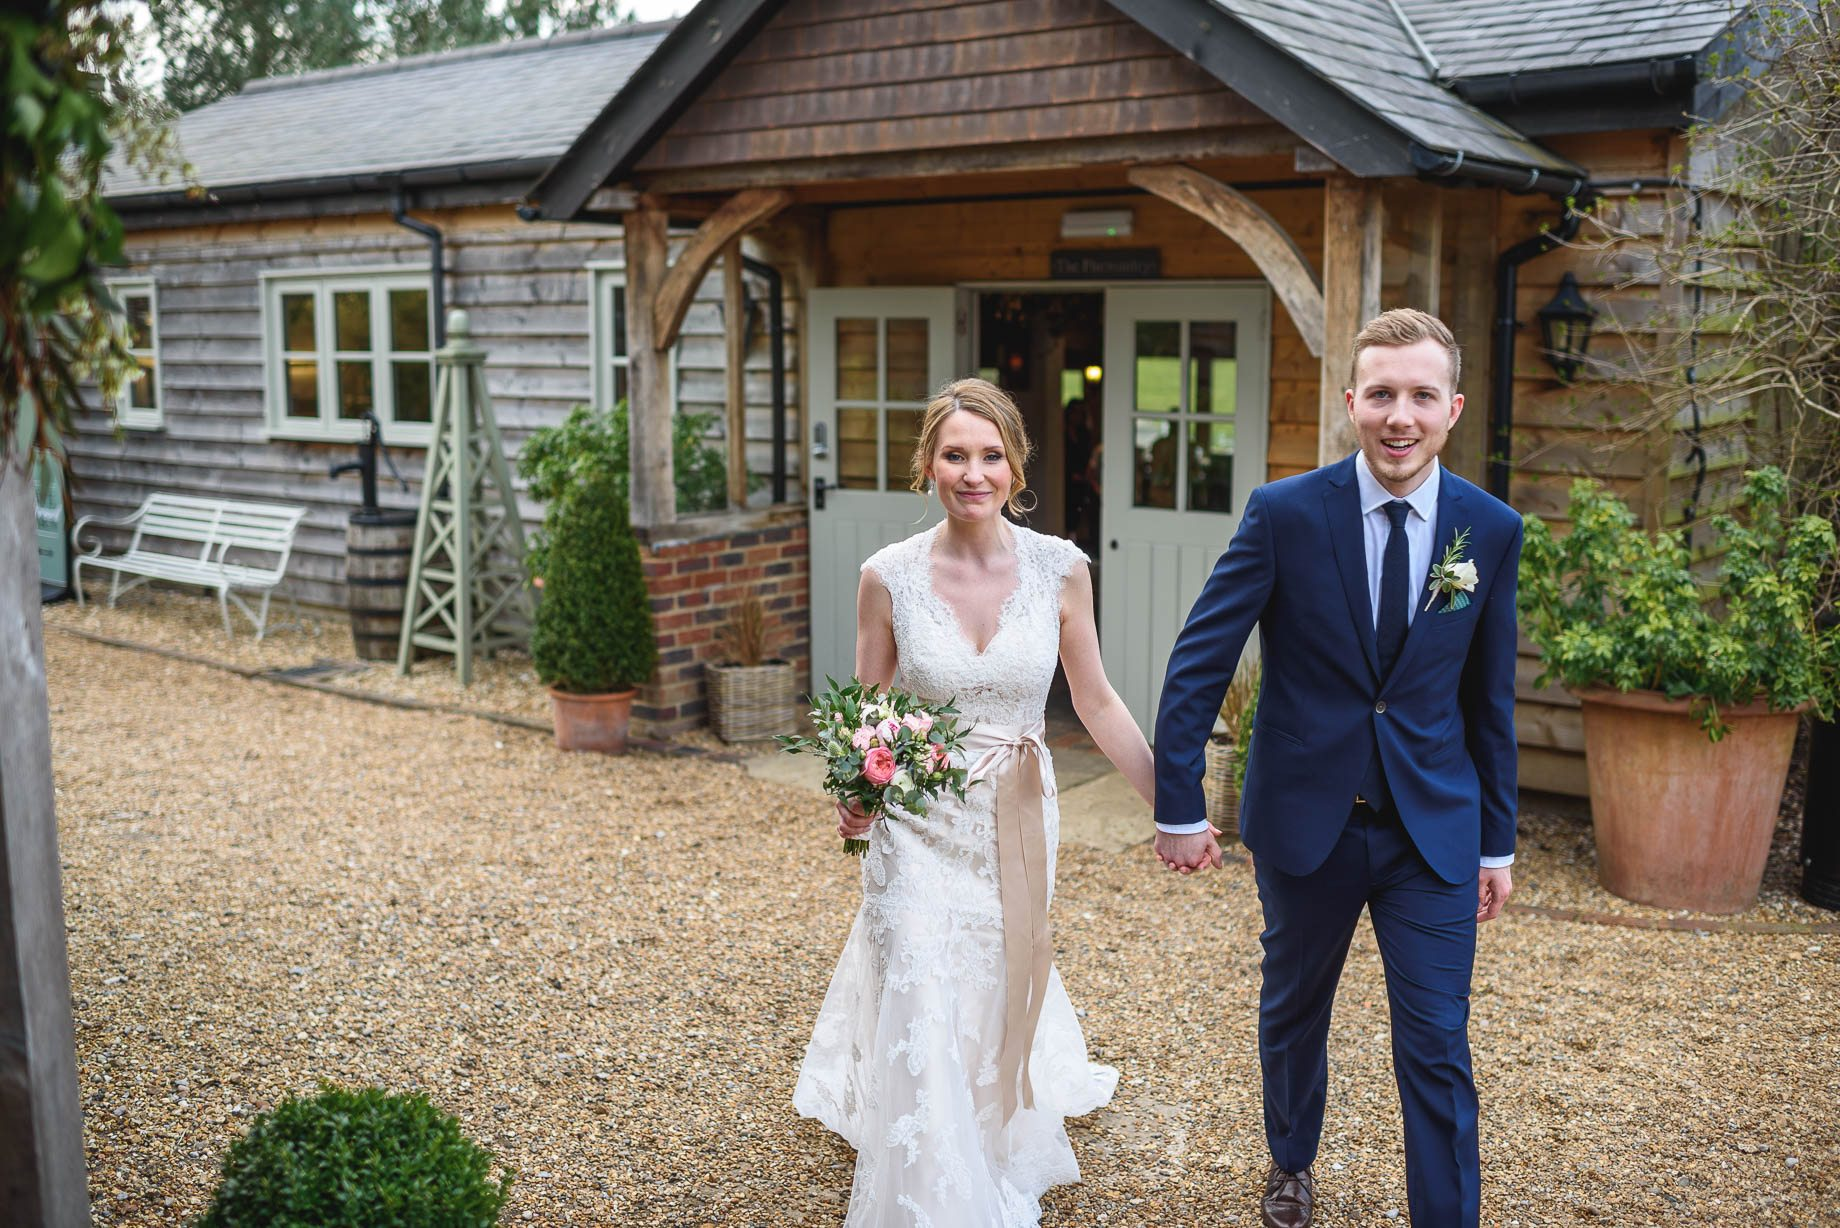 Surrey Wedding Photography by Guy Collier - Becca and James (118 of 145)